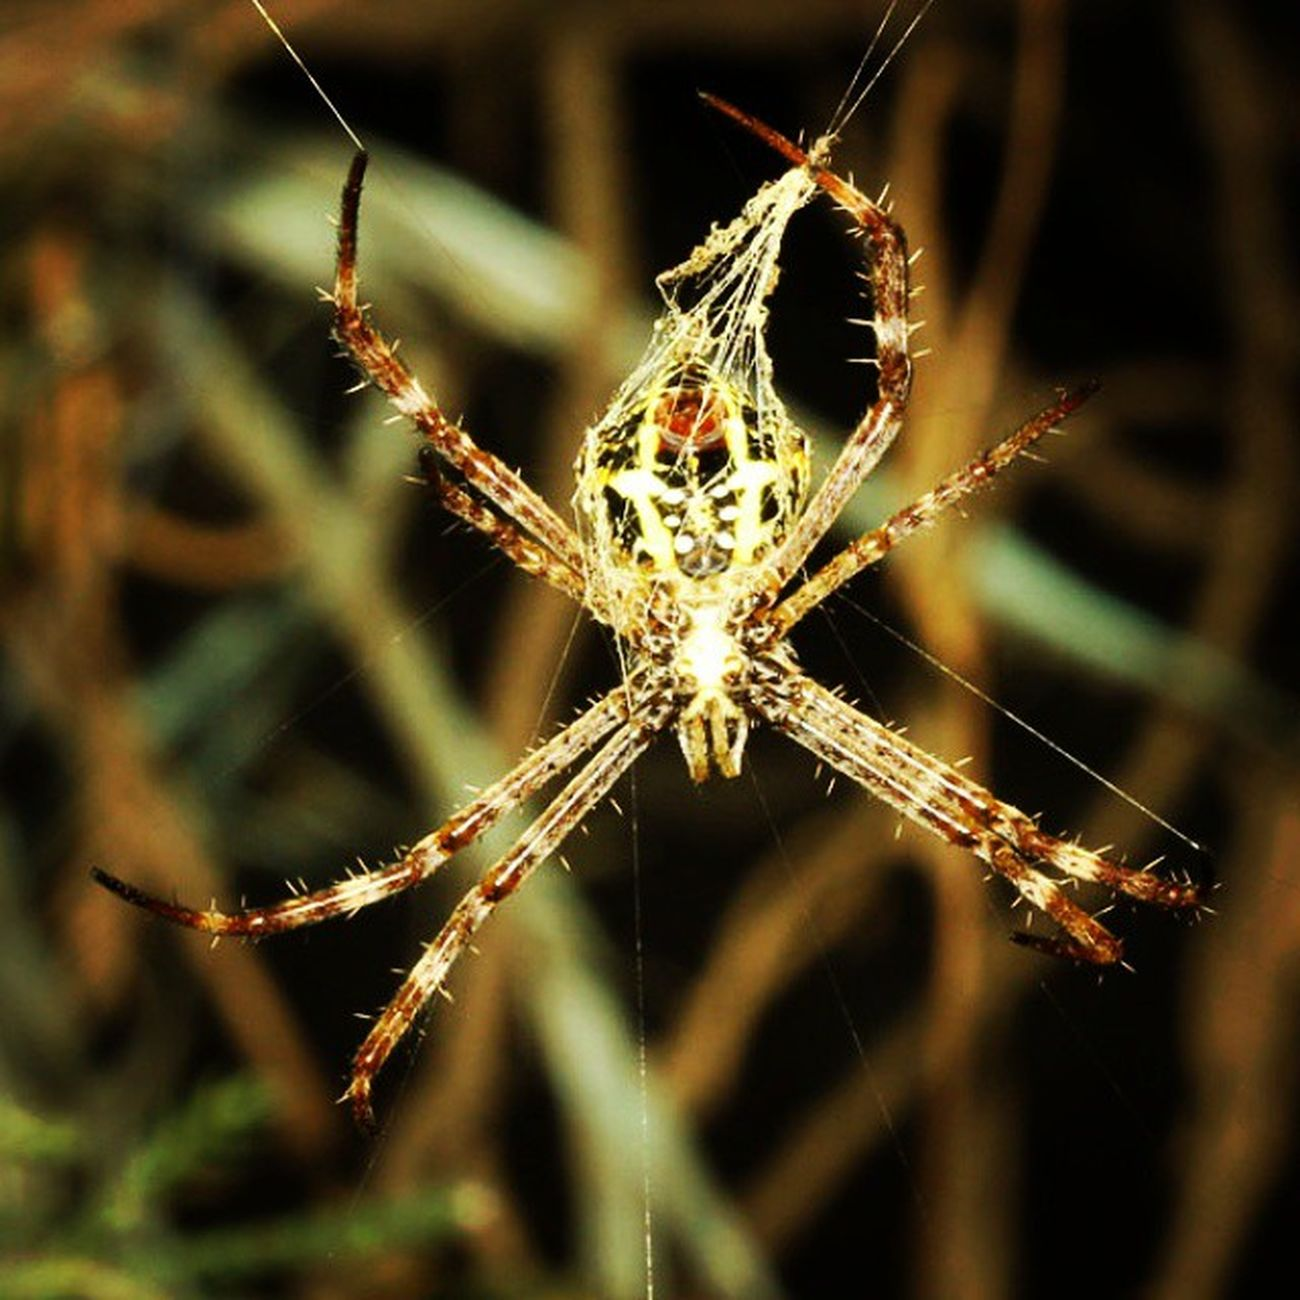 Bikin rumah dulu... Spider Spiderworld Spiderweb Ig_spiders ig_spider labalaba insect insects insect_perfection insectslover tgif_macro tgif_insects alalamiya_macro